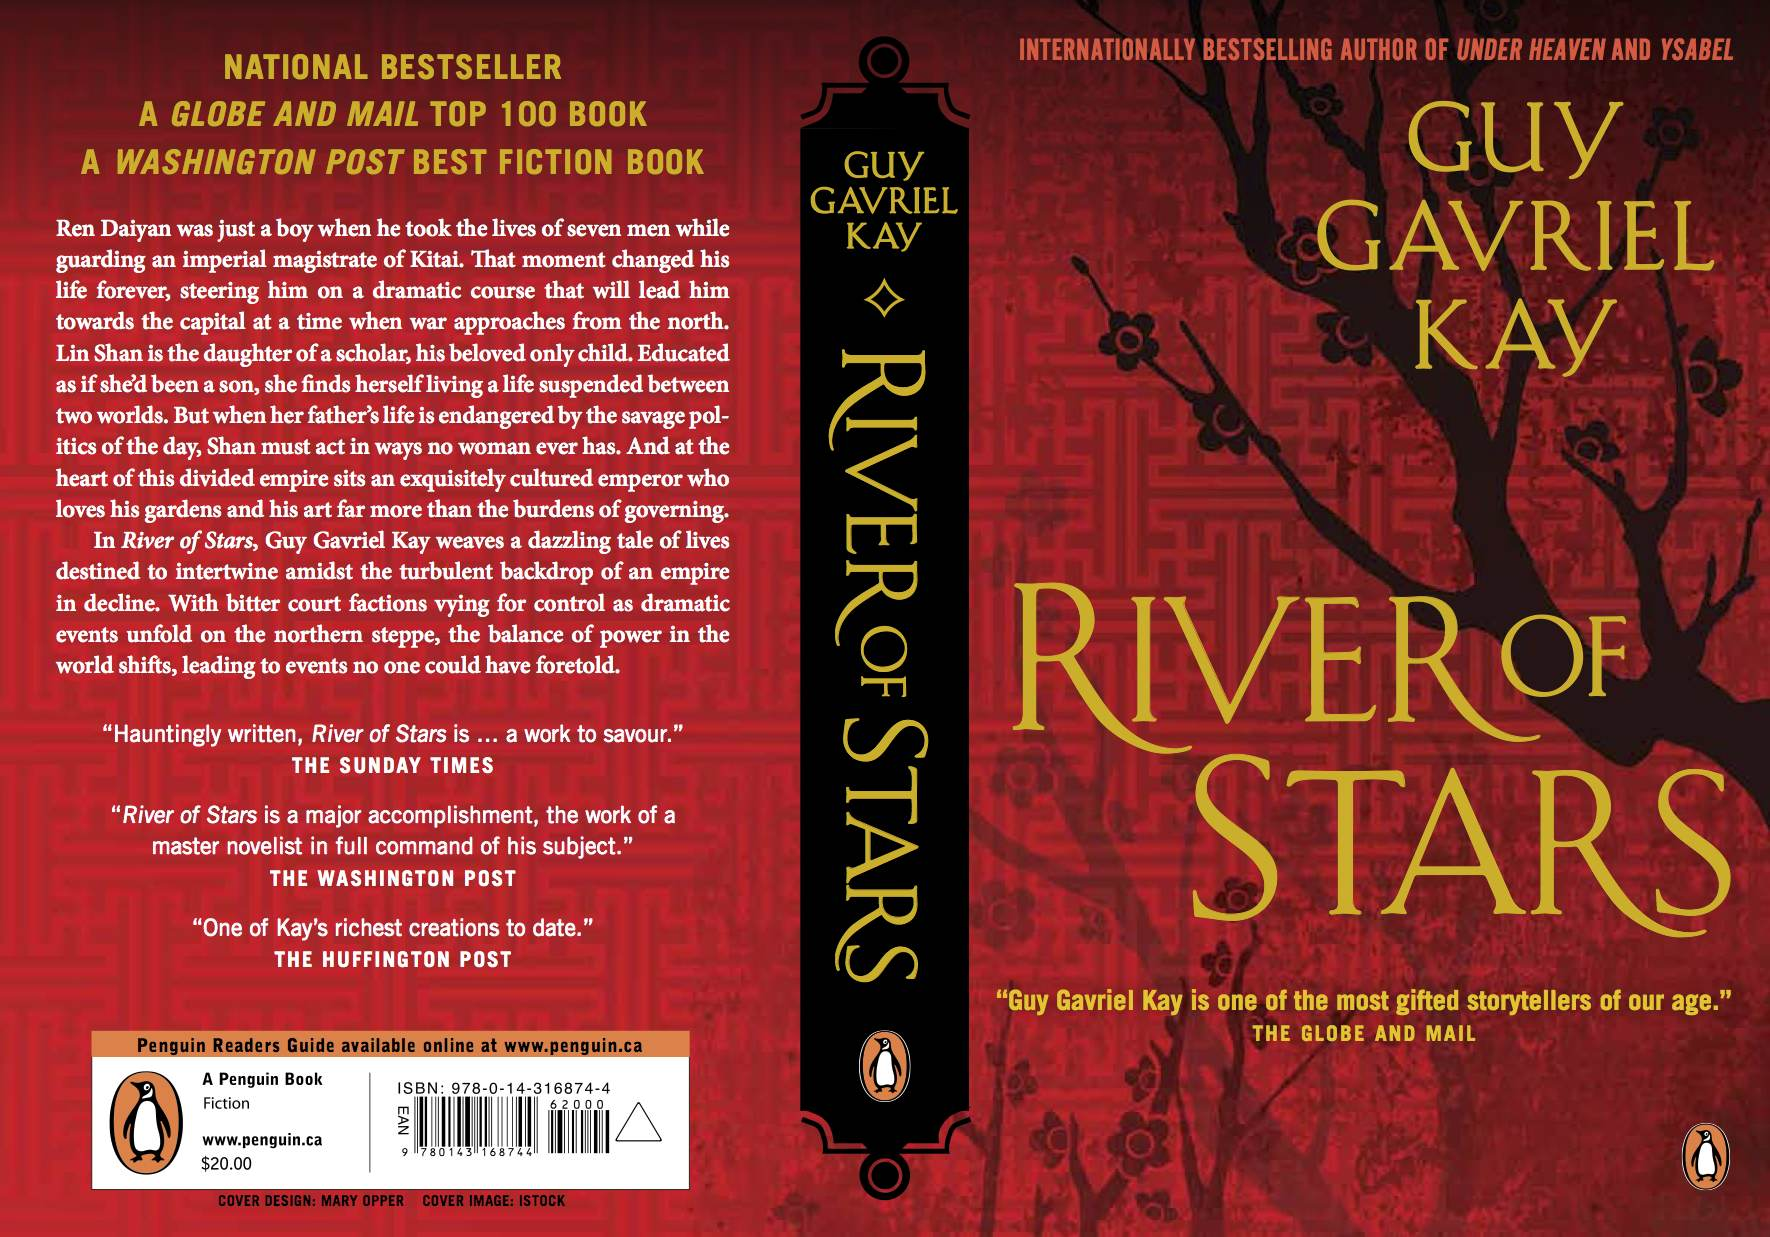 Can trade paperback edition of River of Stars